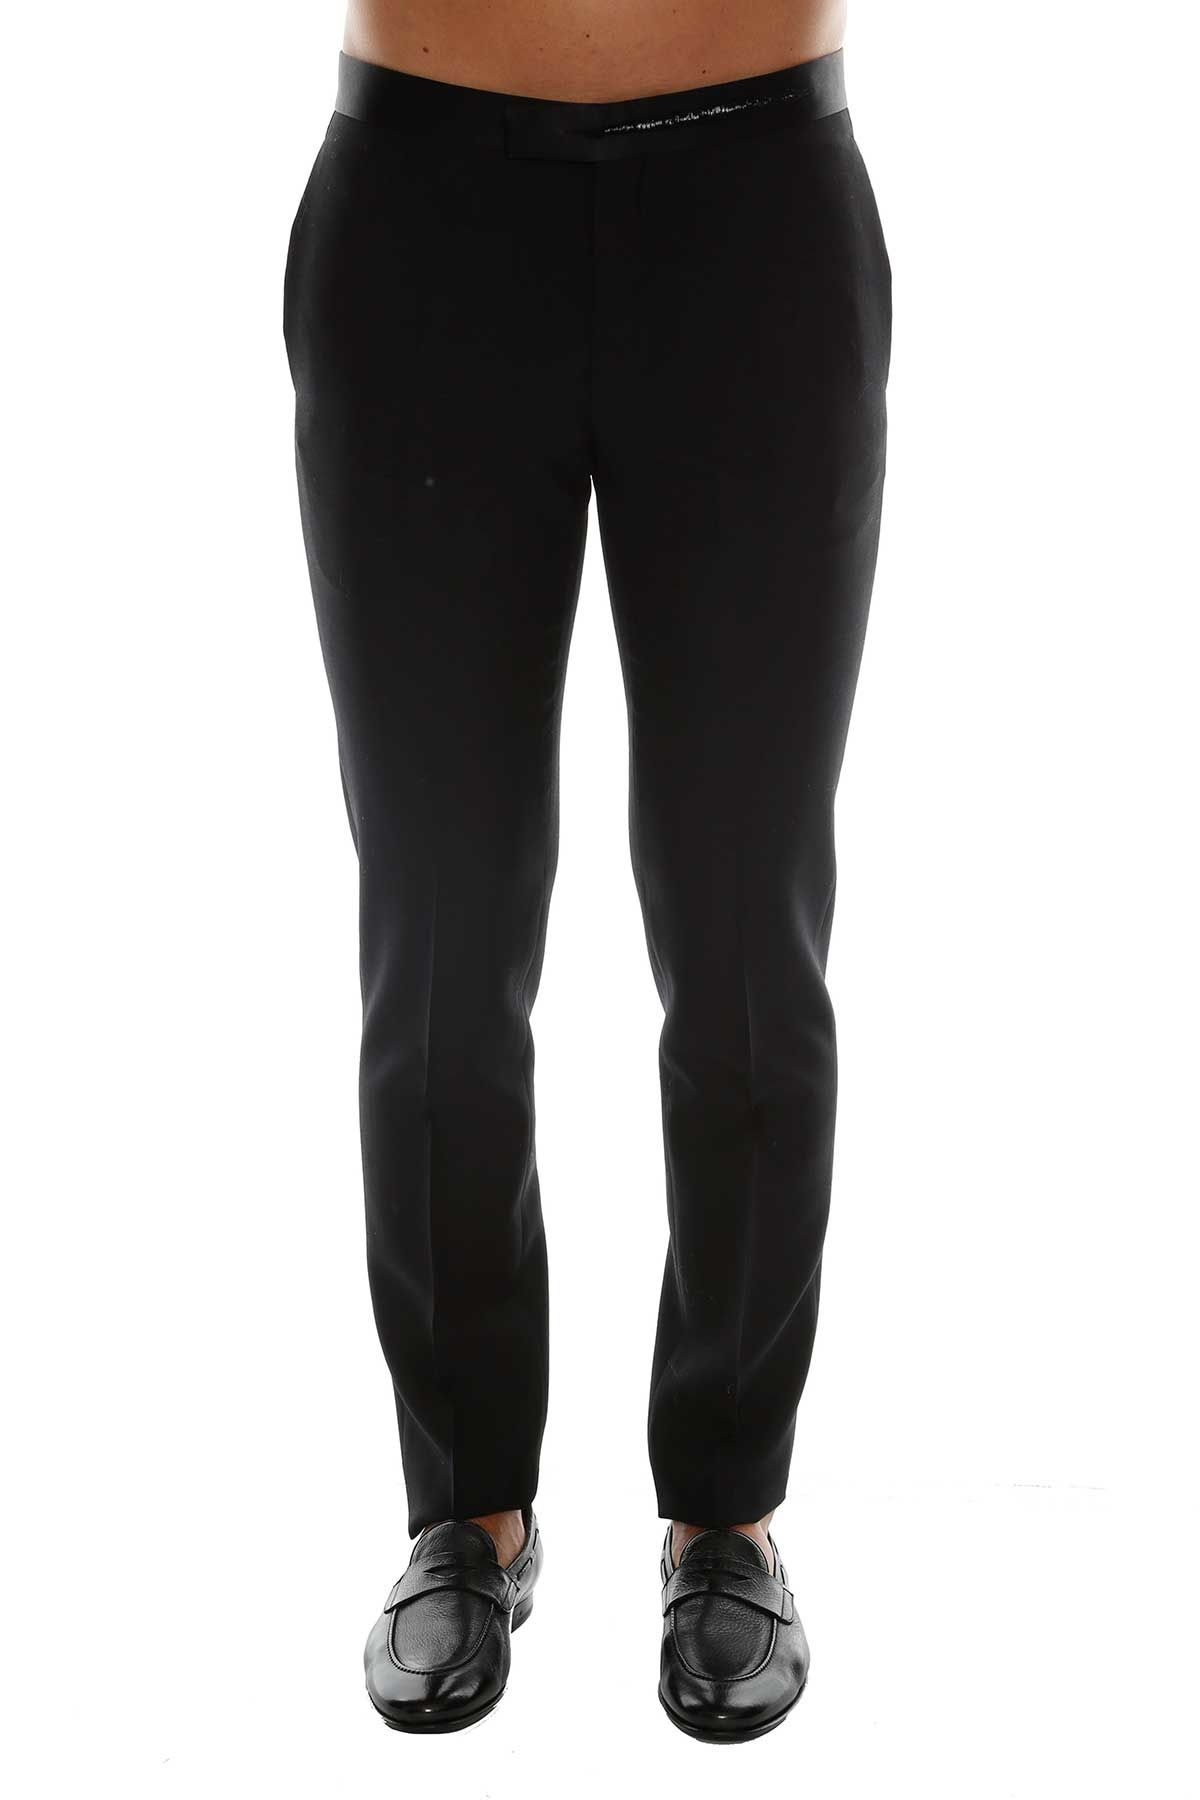 Dior Homme Dior Cut Embroidery Trousers